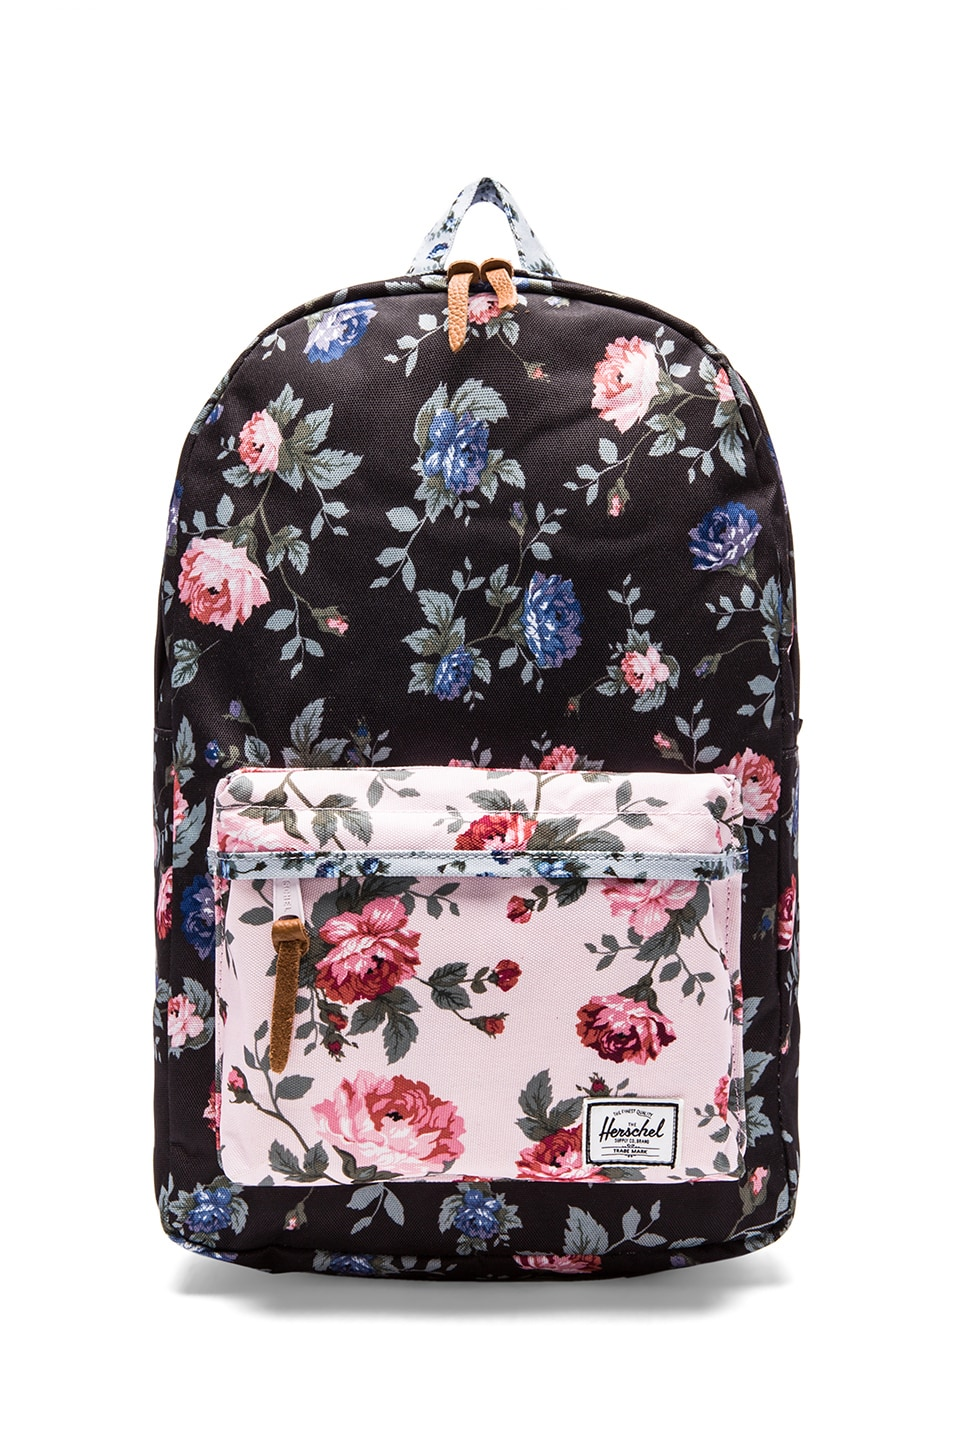 Herschel Supply Co. Fine China Collection Heritage Backpack in Black Floral & Pink Floral